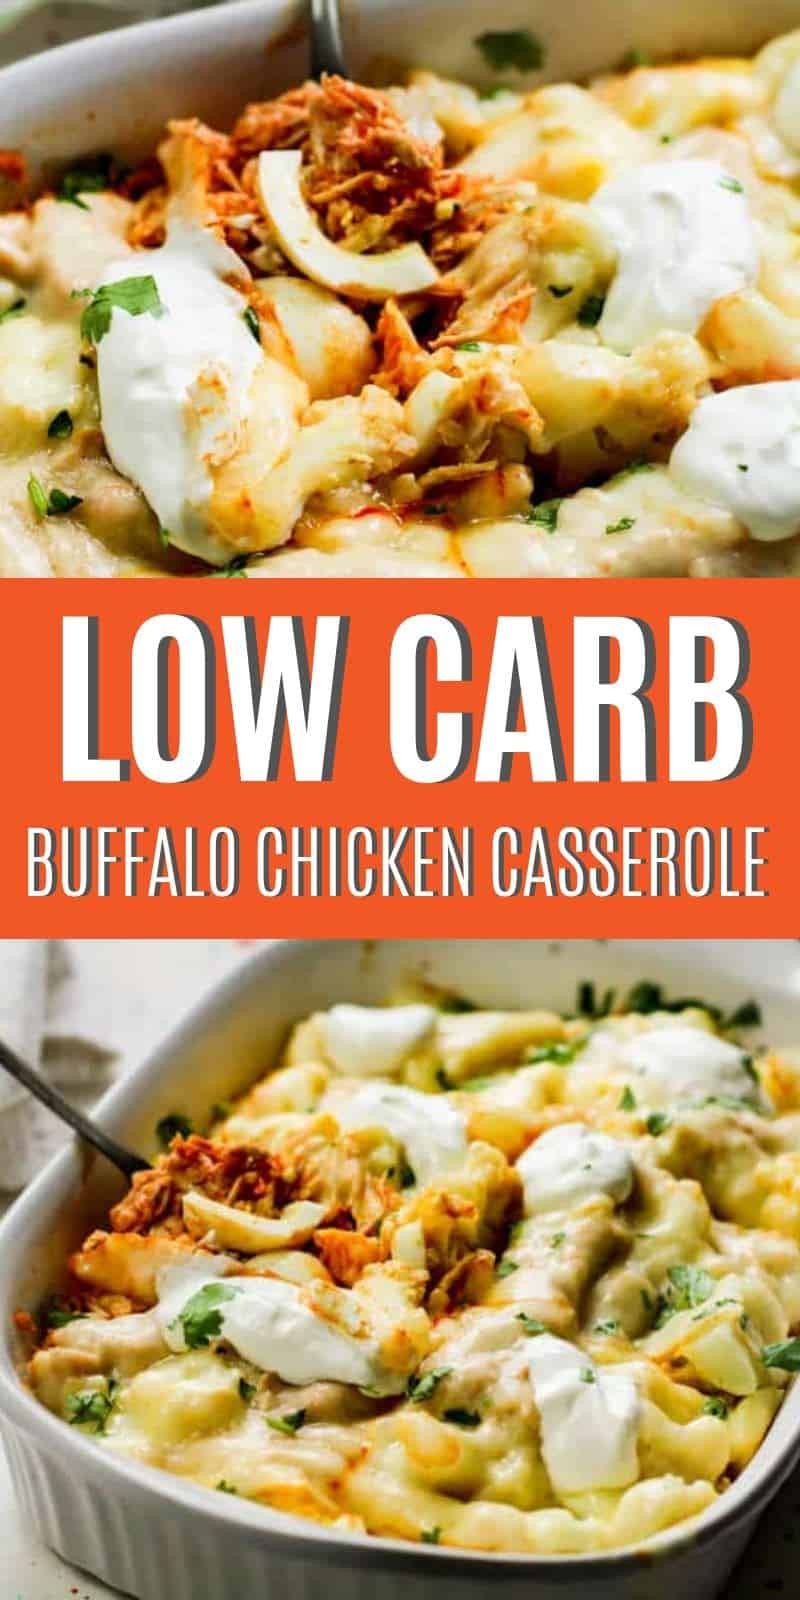 This Low Carb Buffalo Chicken Casserole Recipe is the perfect recipe for dinner tonight! The buffalo flavors mixed with cauliflower and cheese are just amazing!